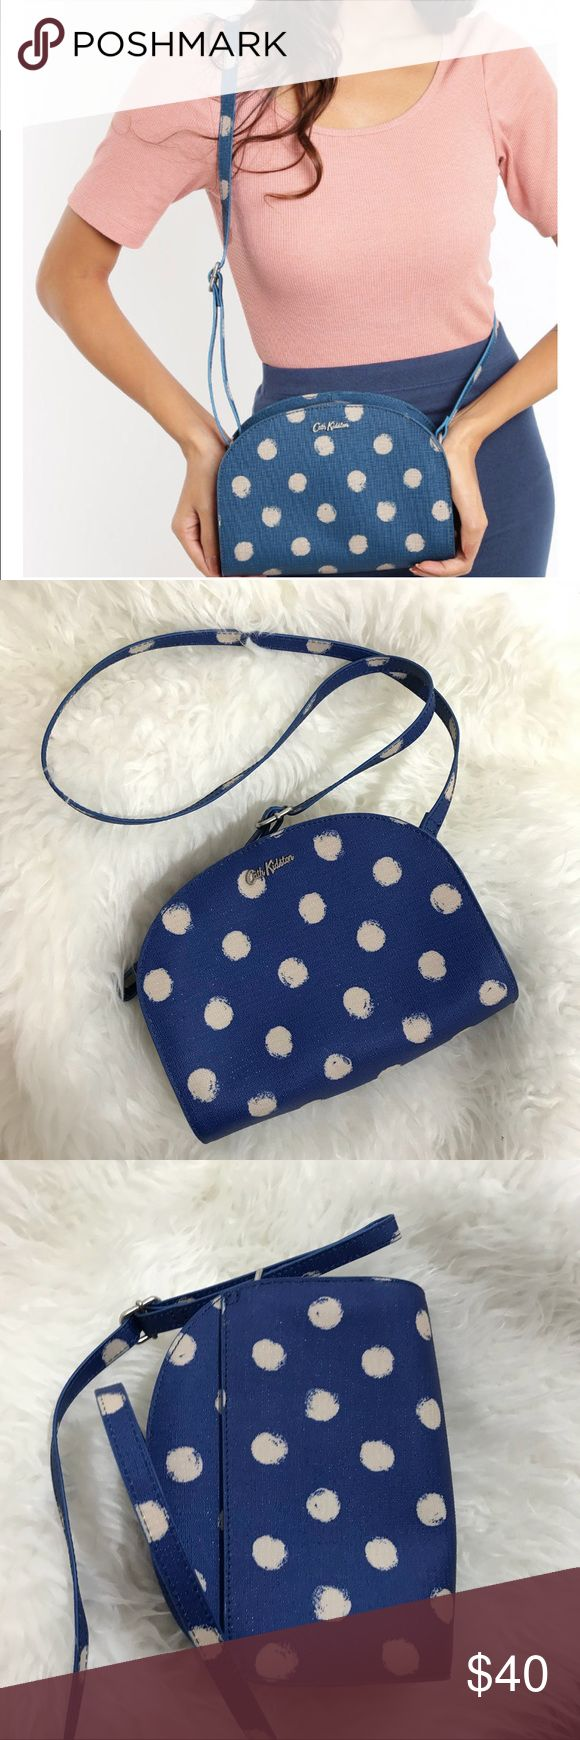 cath kidston • blue polka dot print sling bag condition: used once, like new  * purchased at Harrod's in London! * adjustable strap * main zip compartment, inner slip pocket, slip pocket on back * Coated canvas exterior, lined in cotton * Dimensions: 15 x 22 x 7.5 cm    NO TRADES  trusted seller for years • ships quickly great feedback • REASONABLE offers welcome Cath Kidston Bags